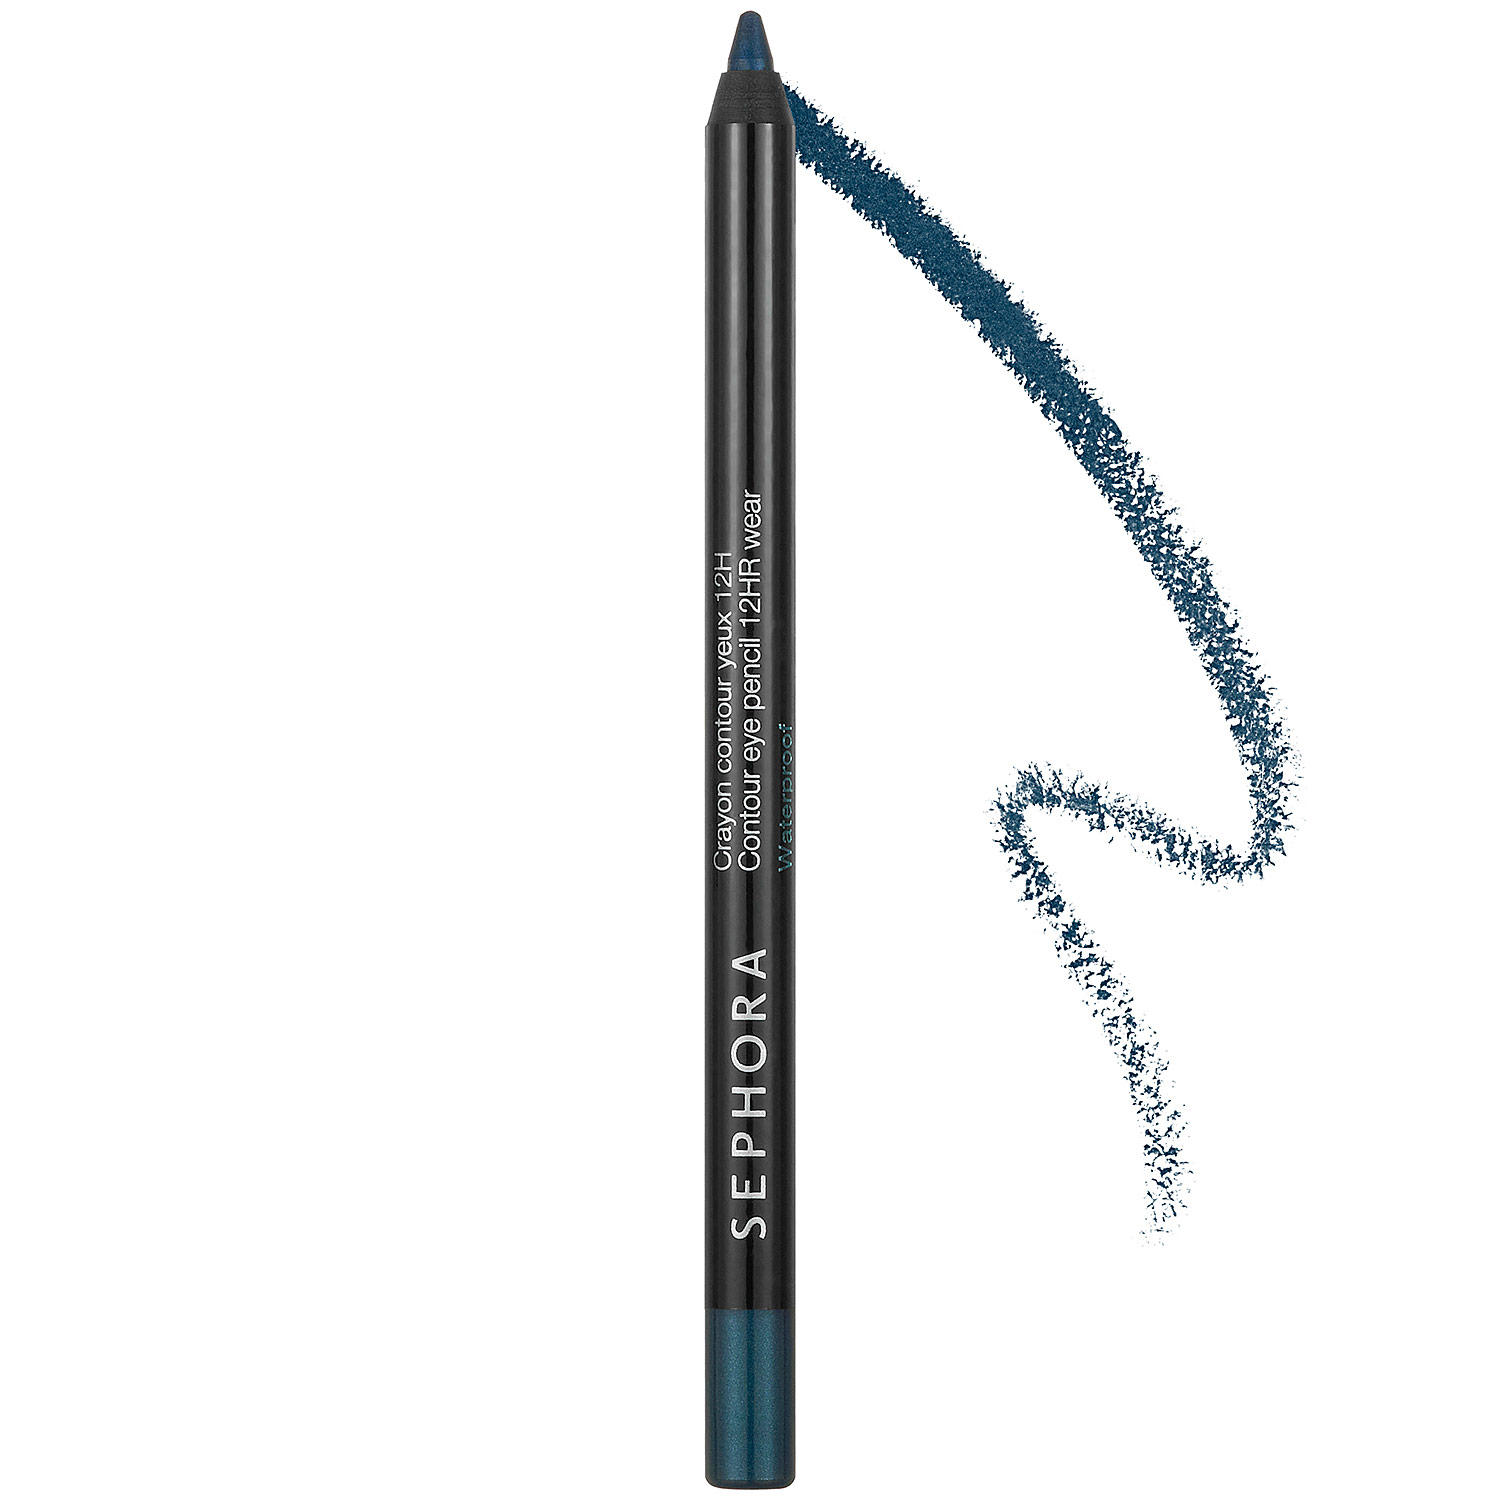 Sephora Contour Eye Pencil 12hr Wear Waterproof Surfer Babe 24